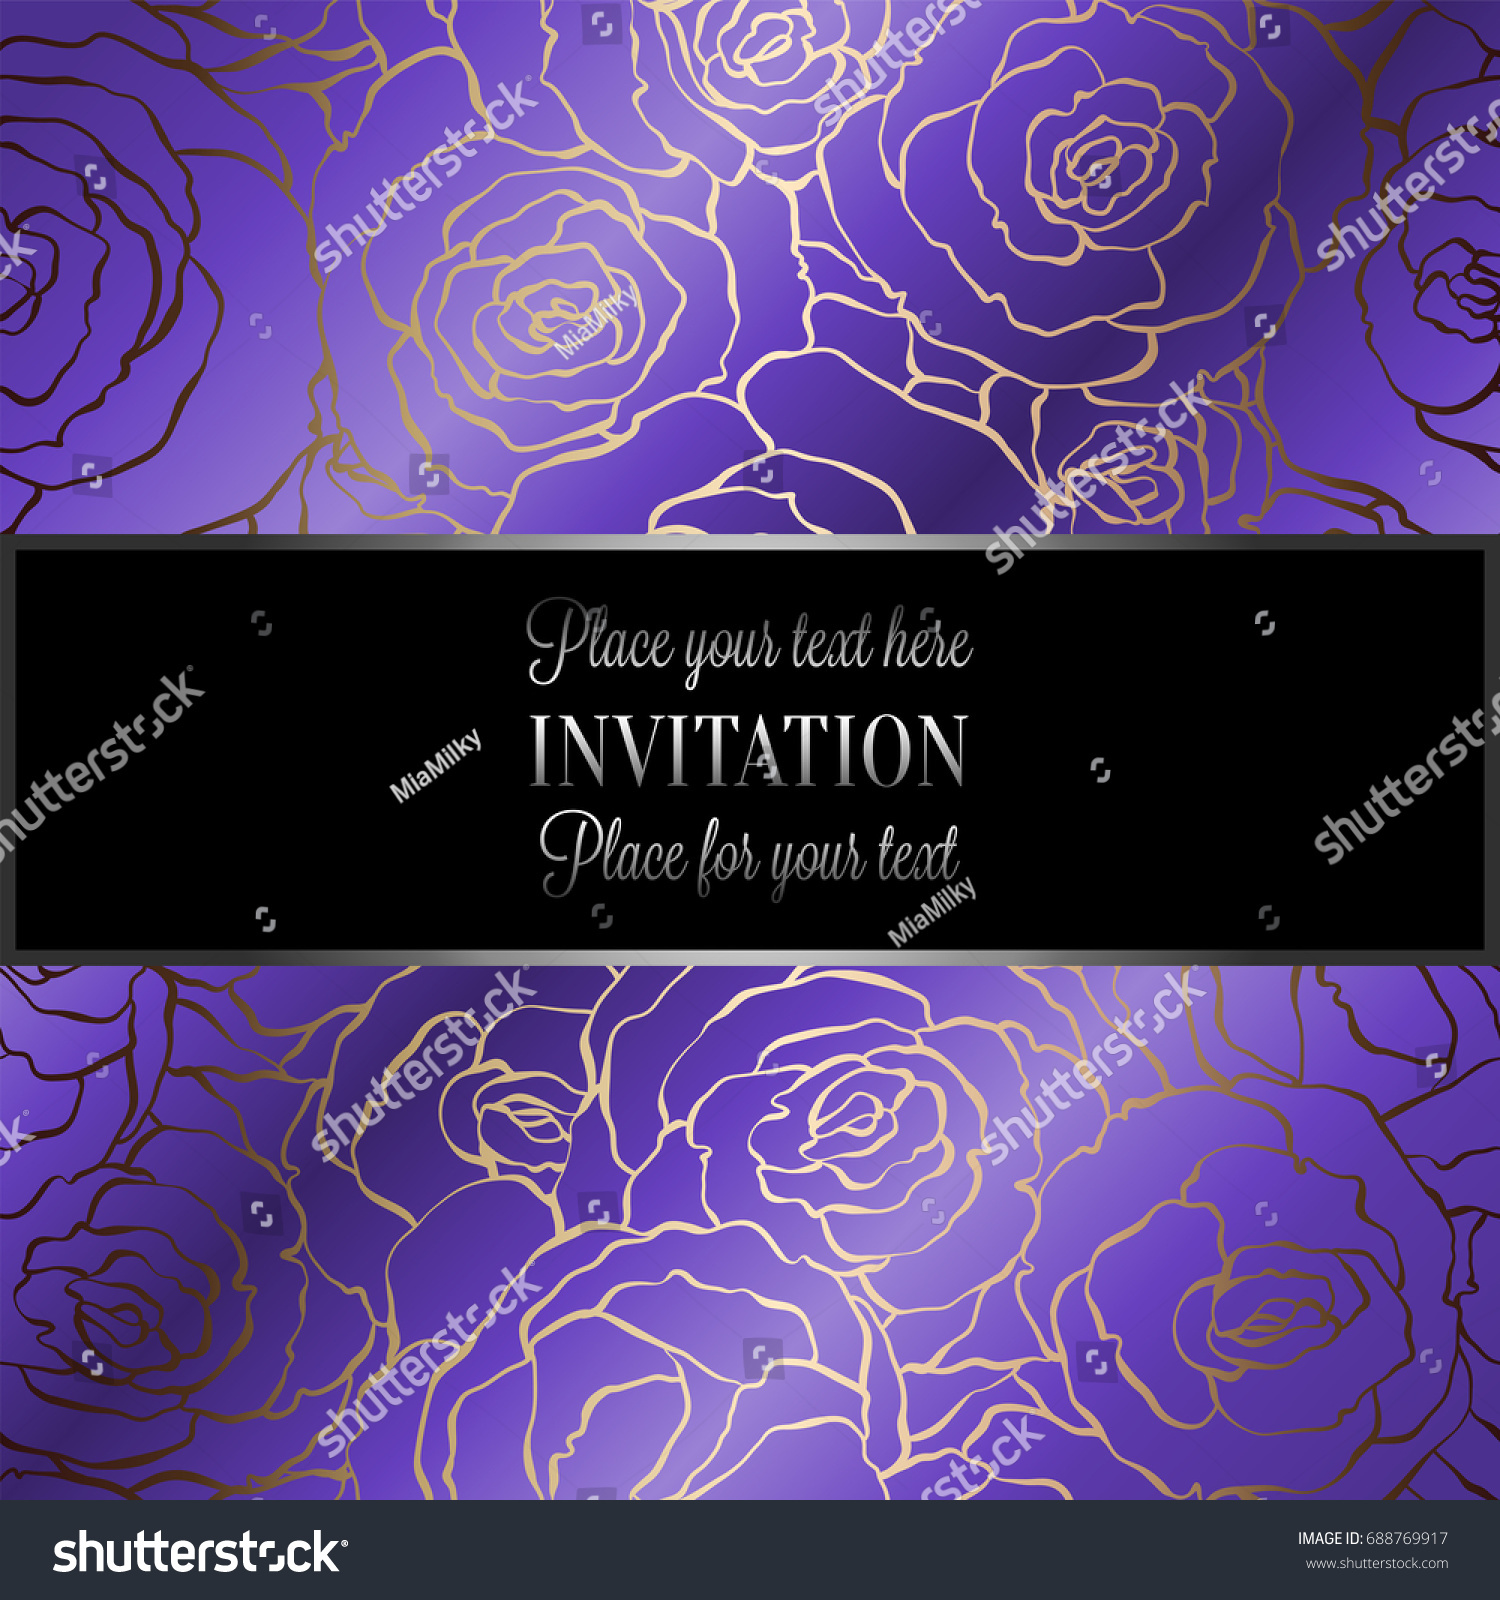 Abstract Background With Roses Luxury Royal Purple Violet And Gold Vintage Frame Victorian Banner Damask Floral Wallpaper Ornaments Invitation Card